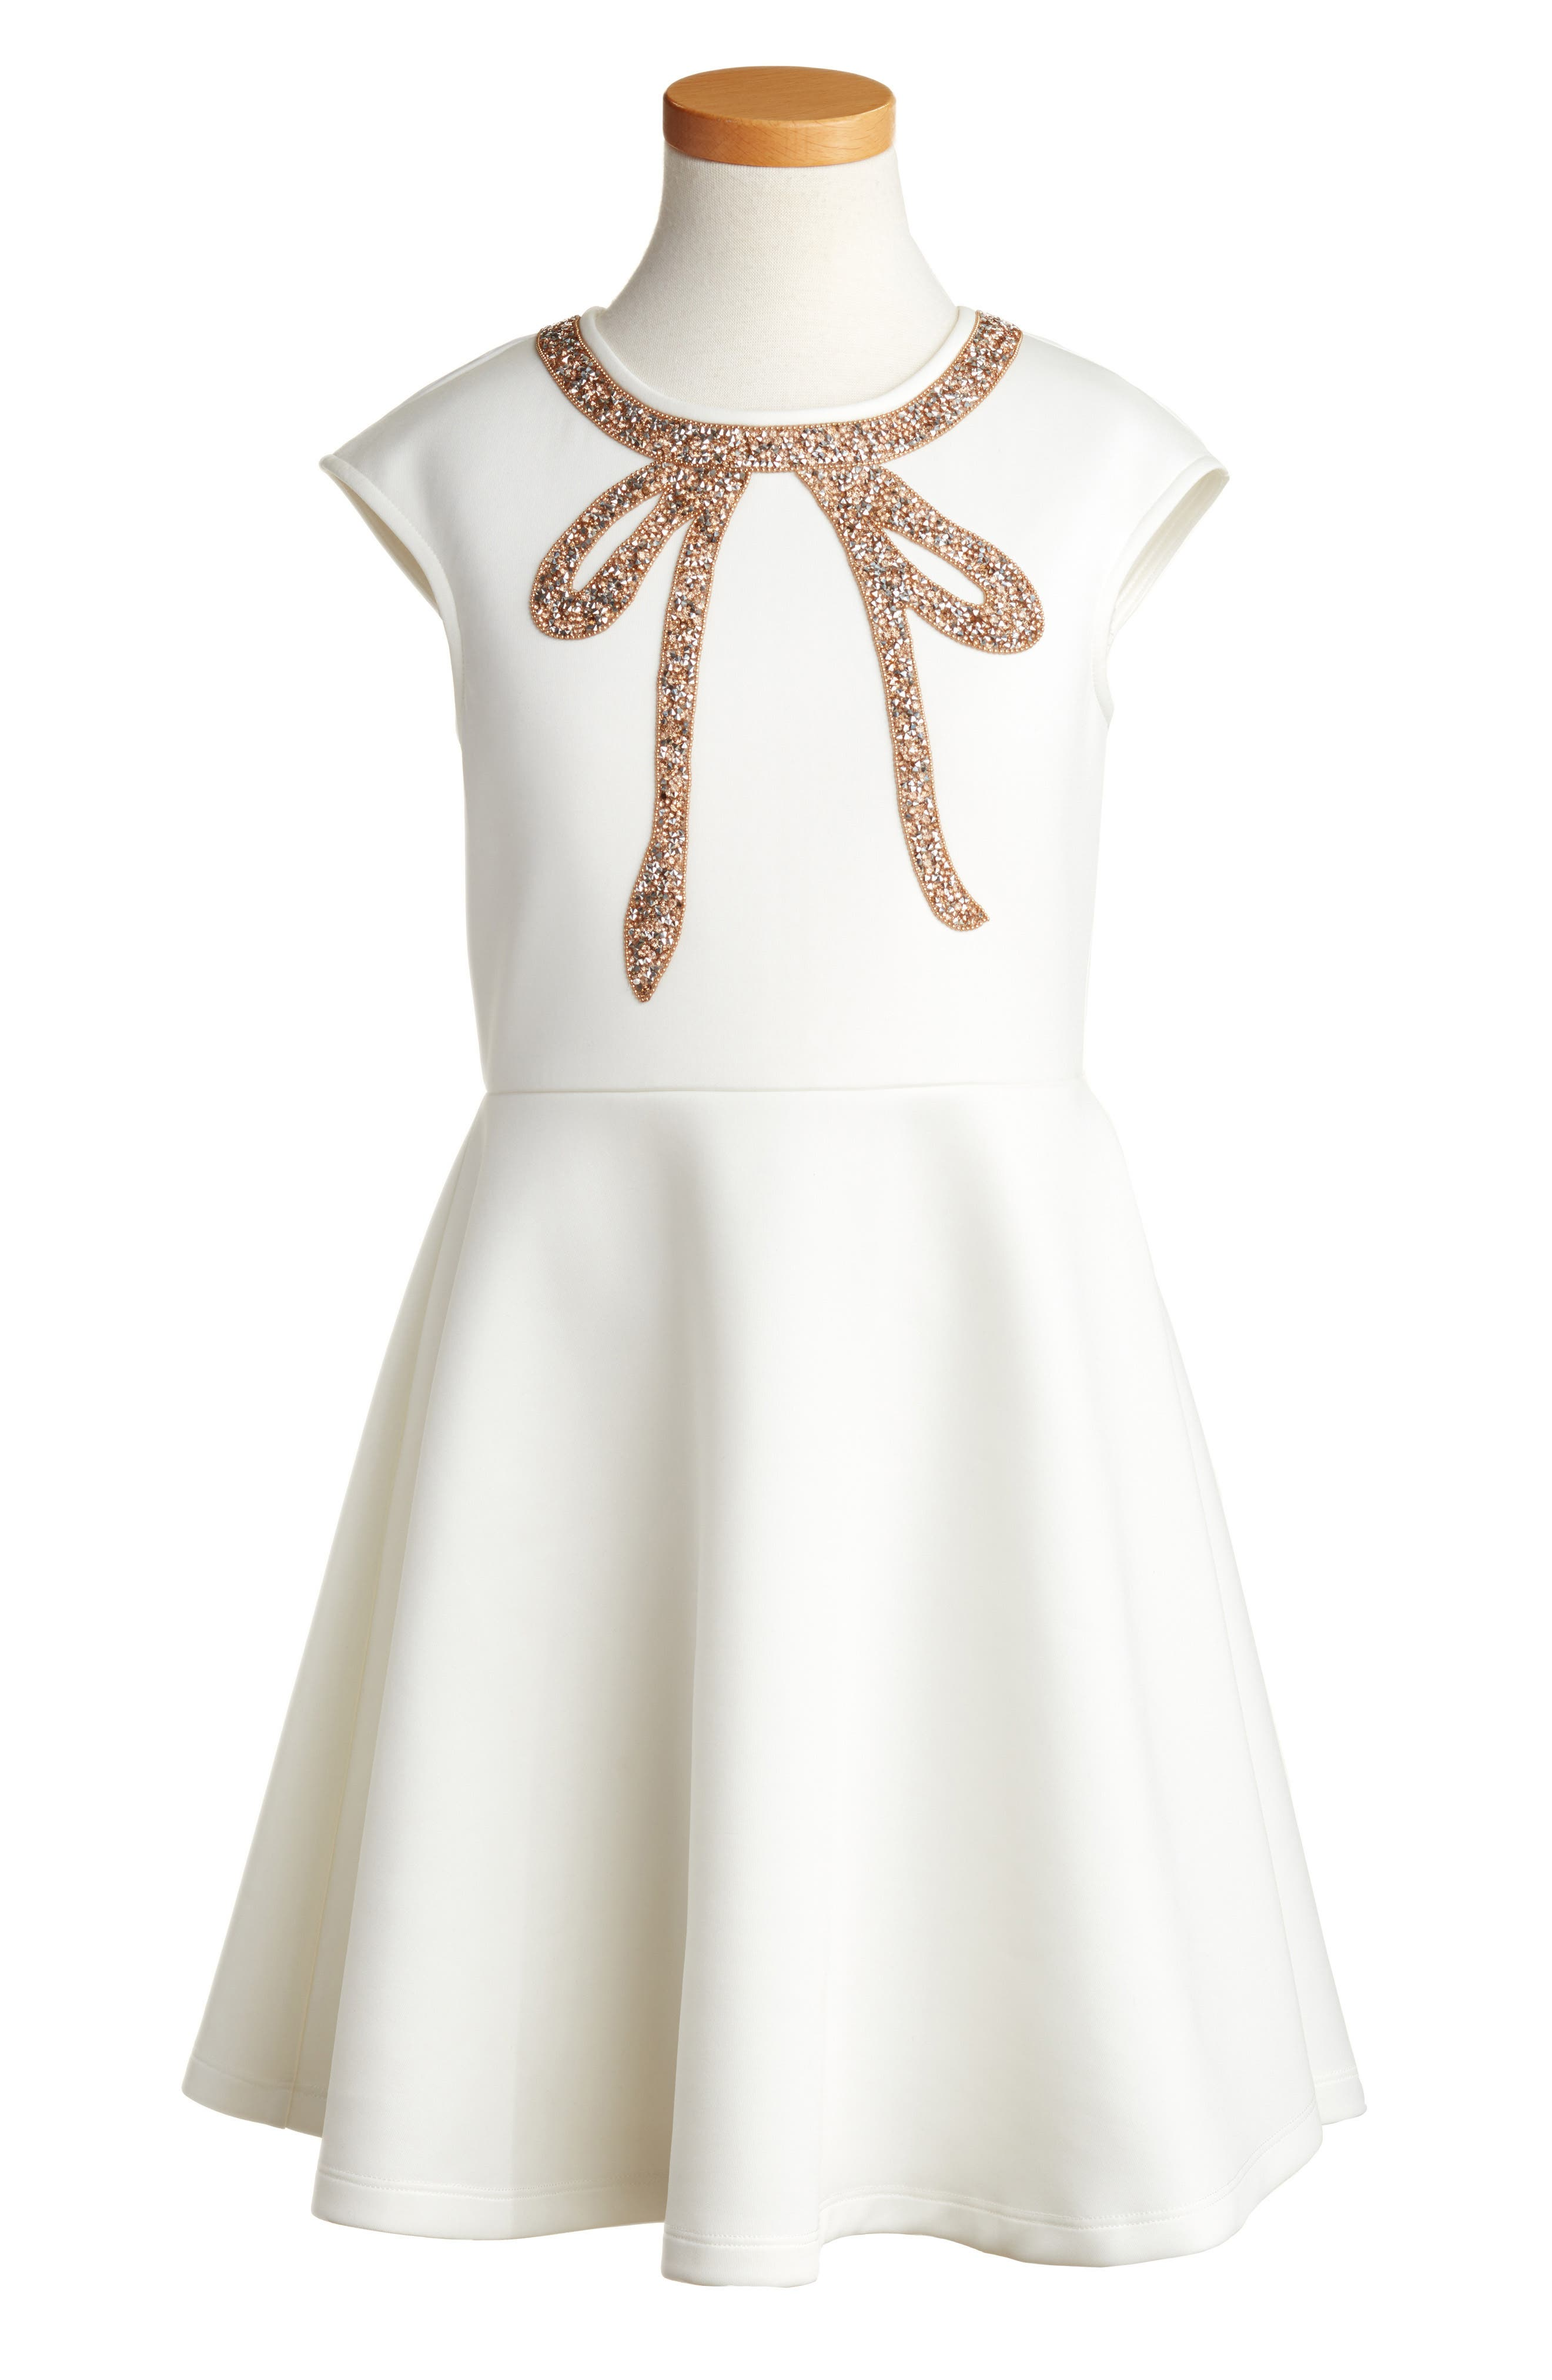 Cap Sleeve Bow Dress,                             Main thumbnail 1, color,                             White/ Gold